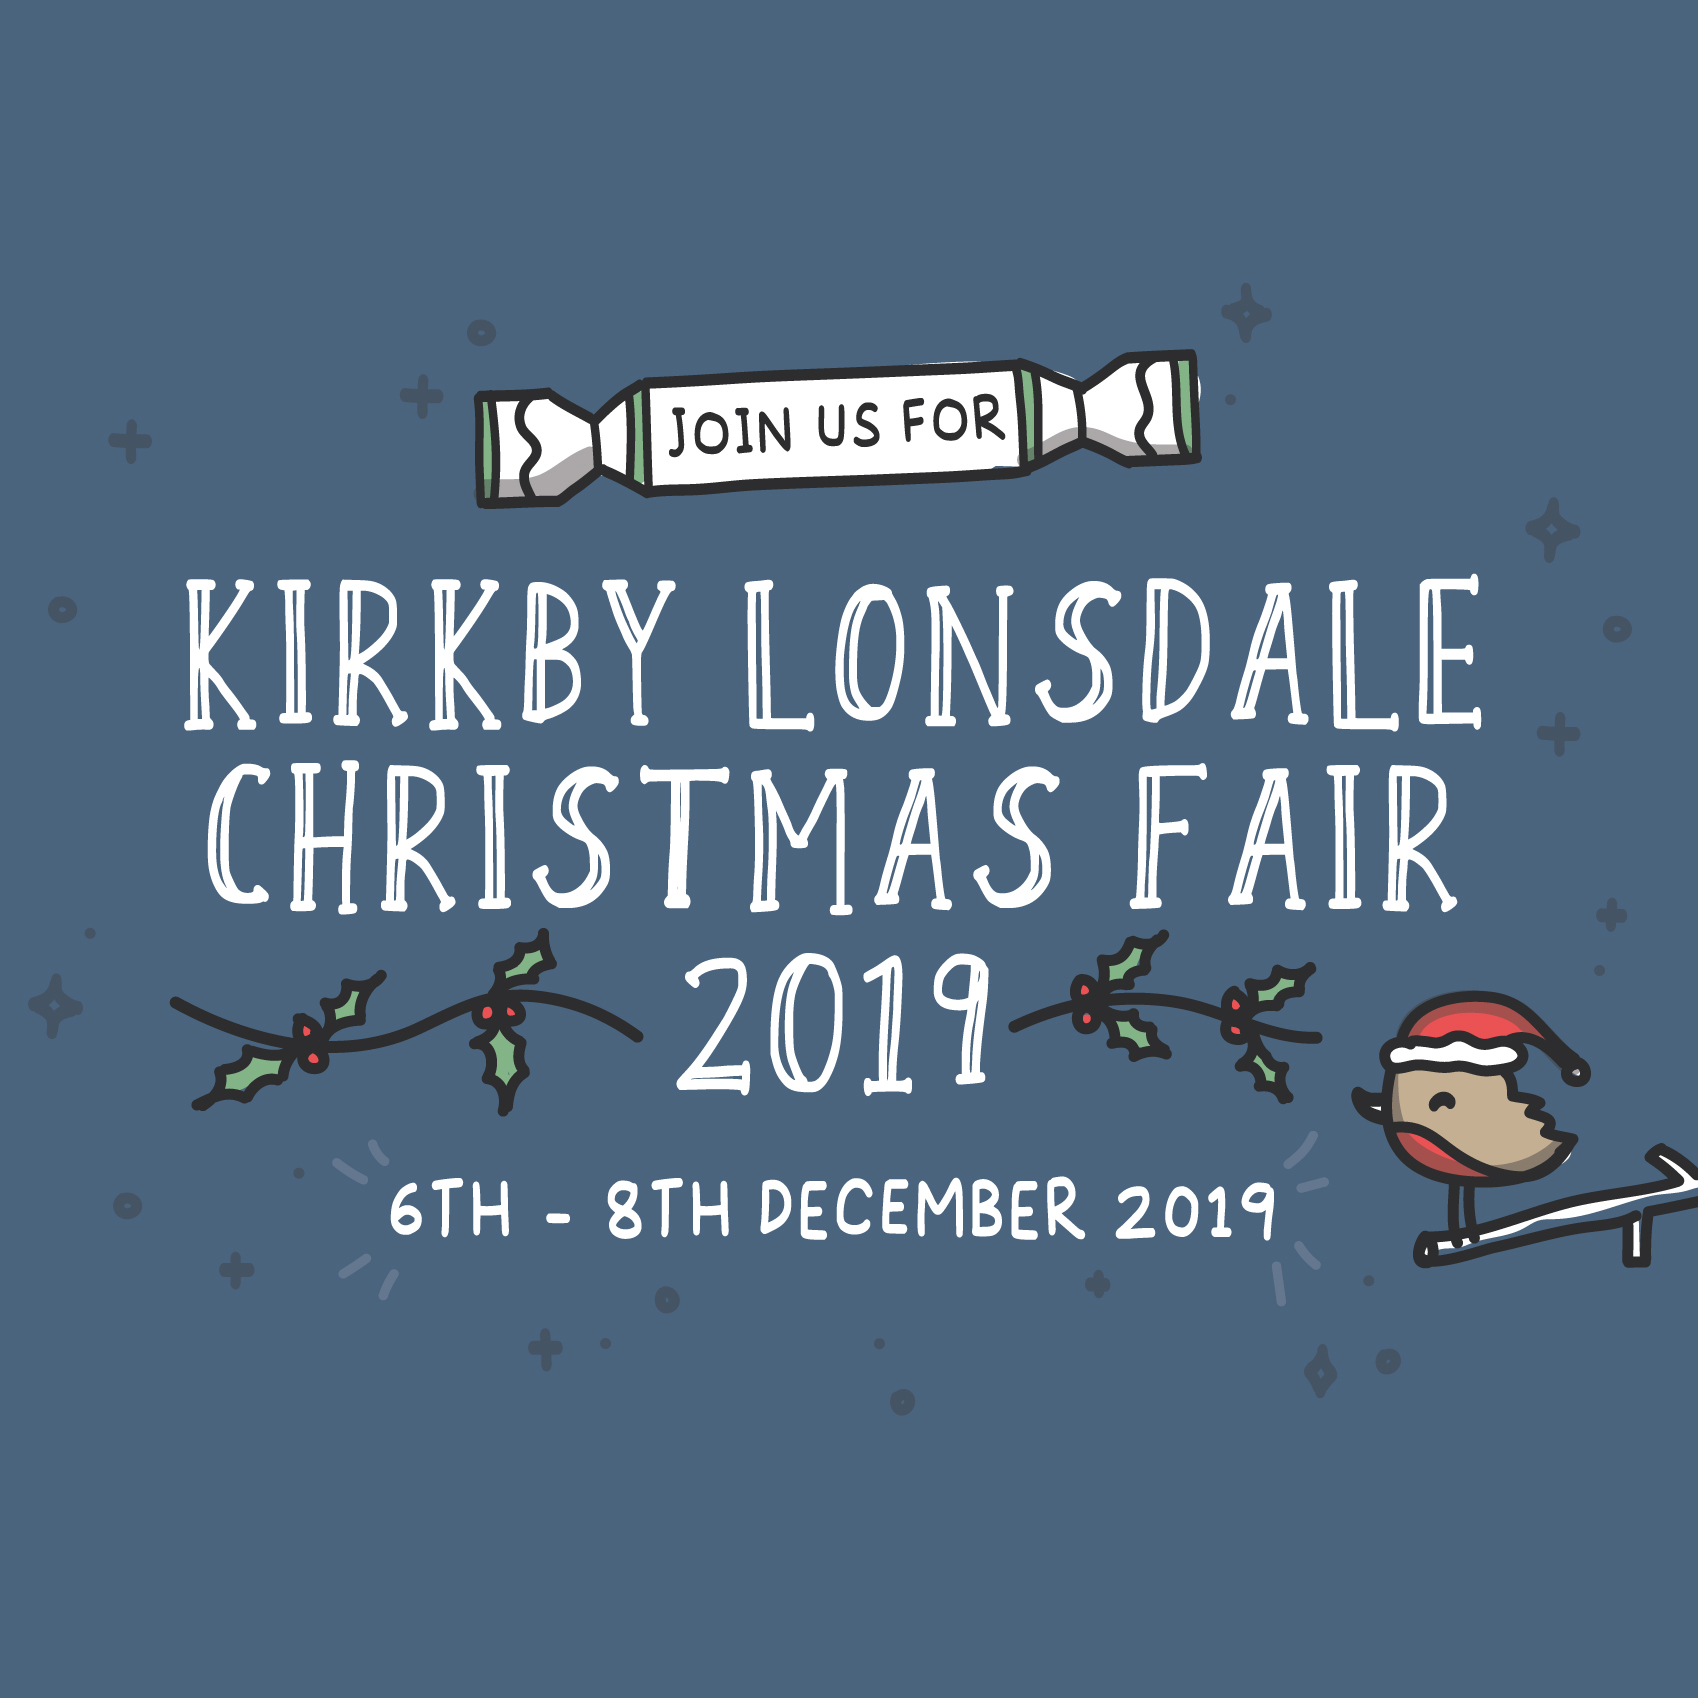 Join us for Kirkby Lonsdale Christmas Fair 2019 6th - 8th December